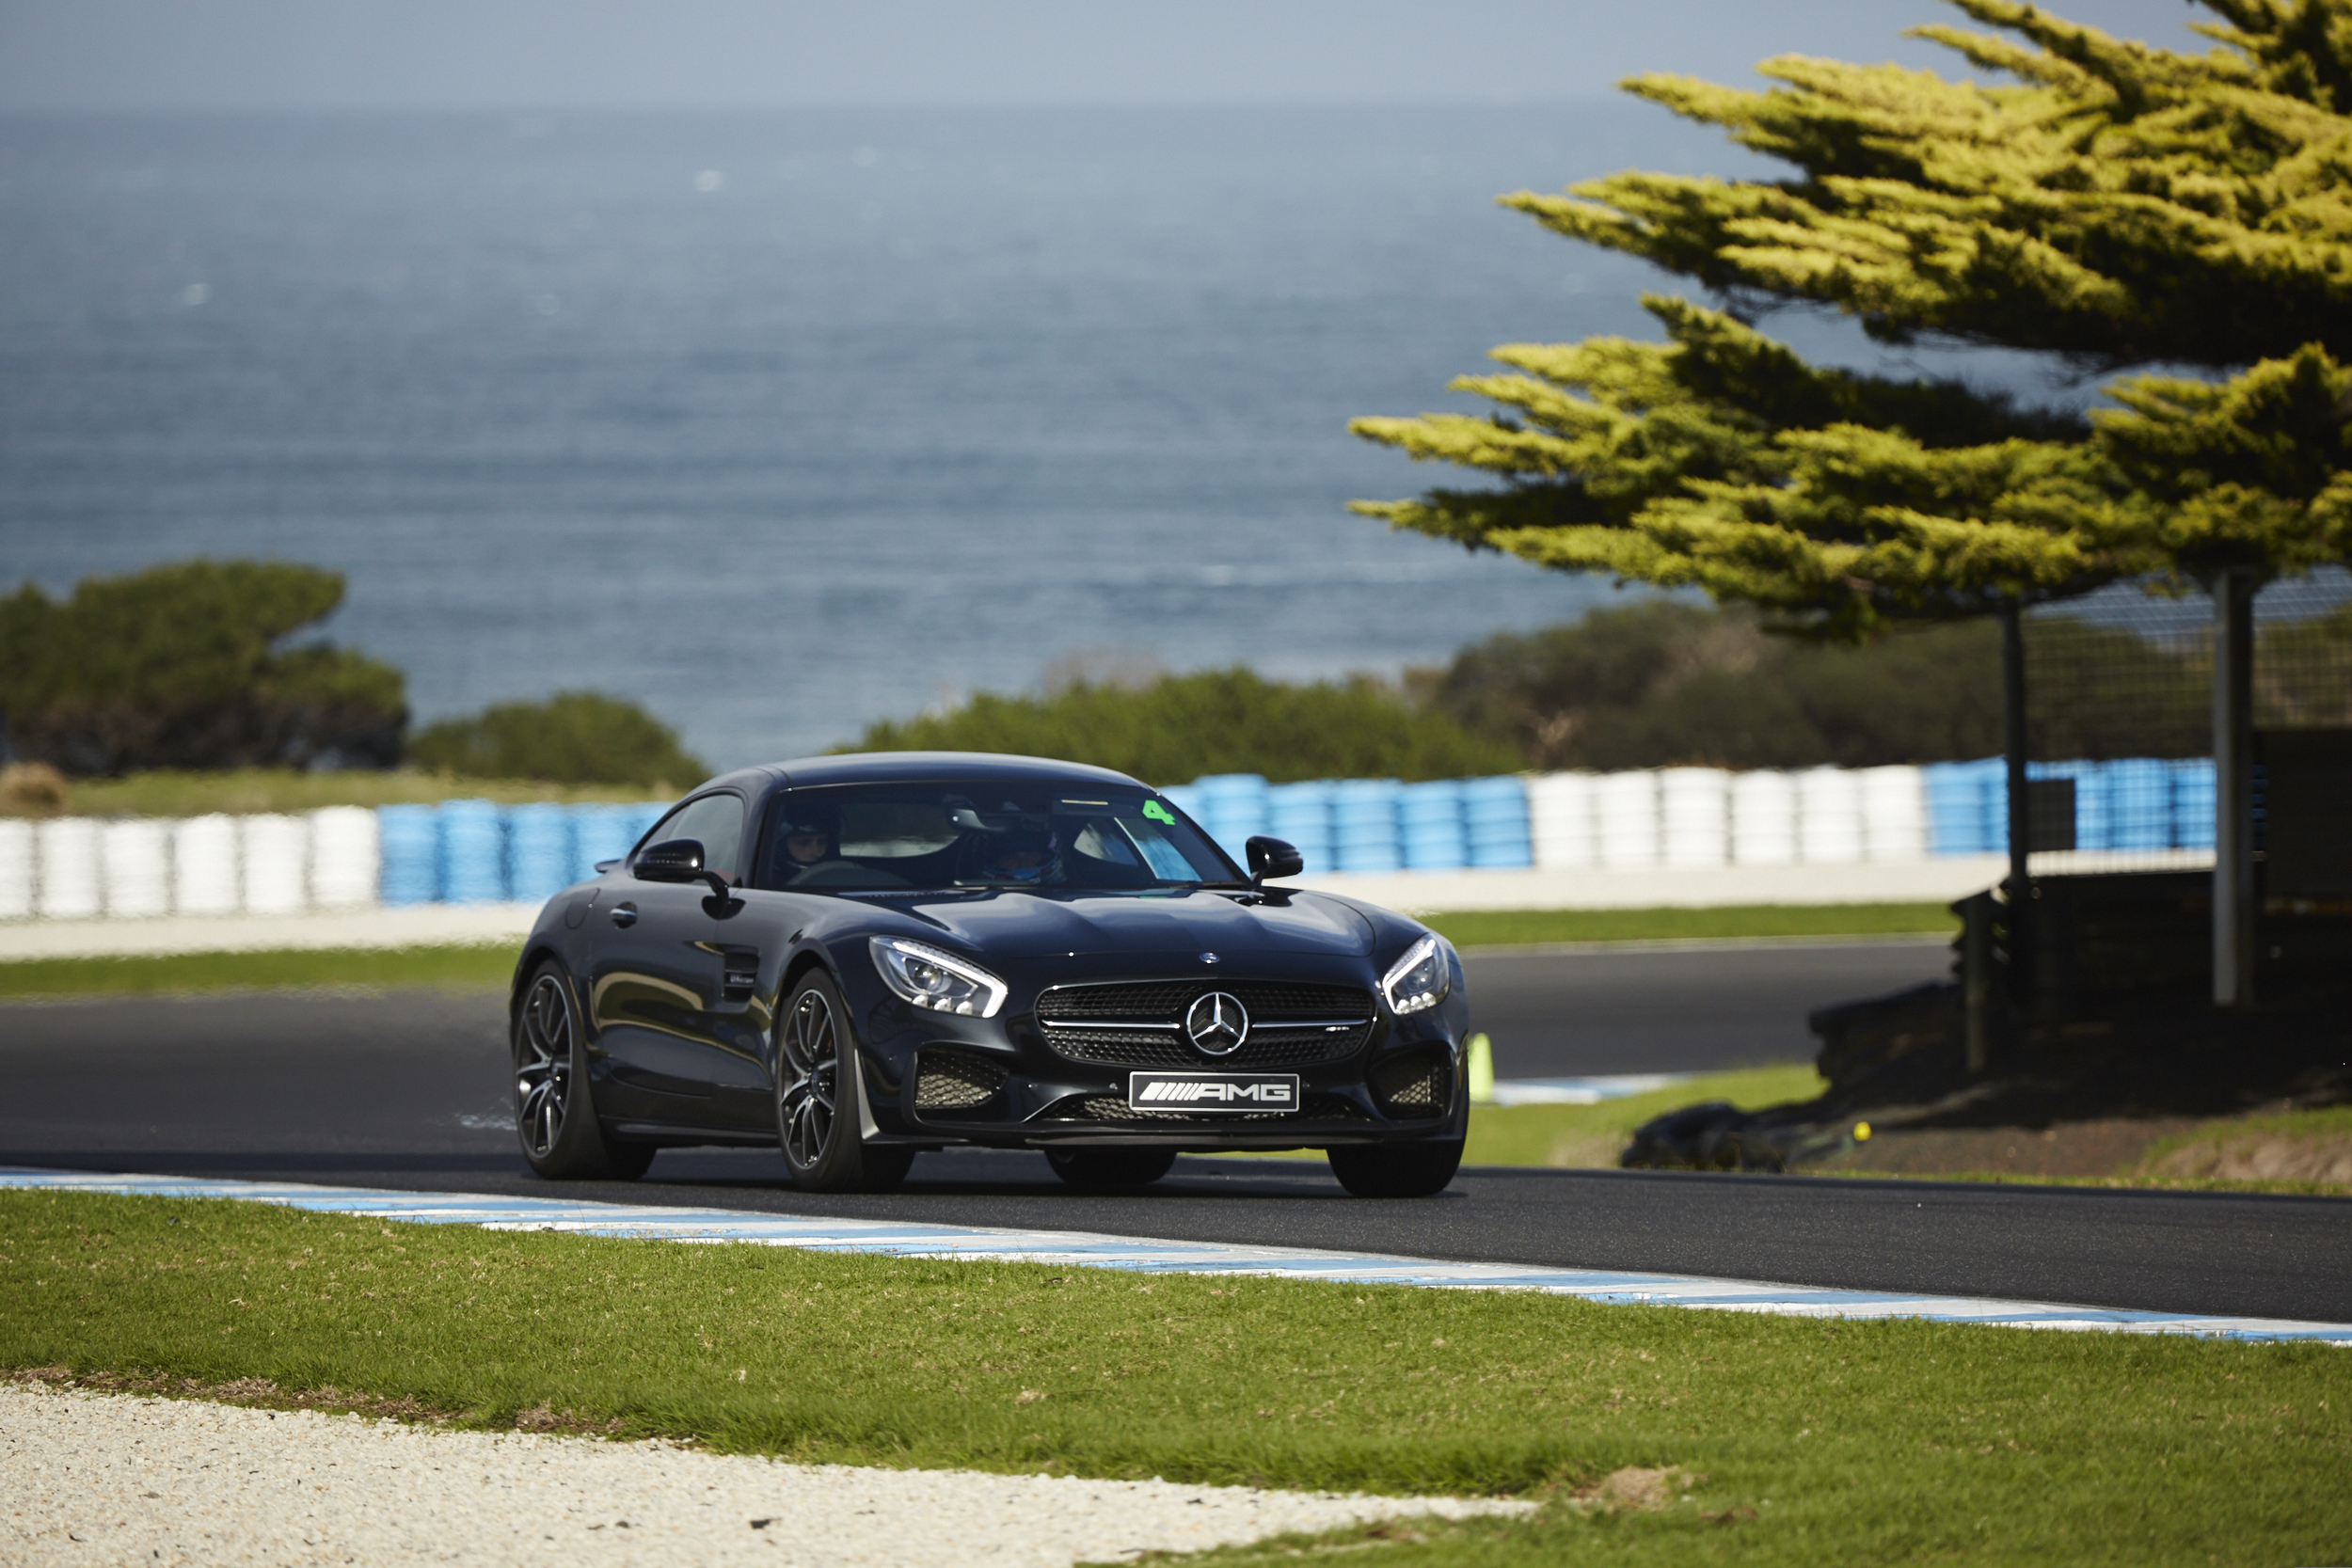 AMG-PhillipIsland-23-5-254.jpg